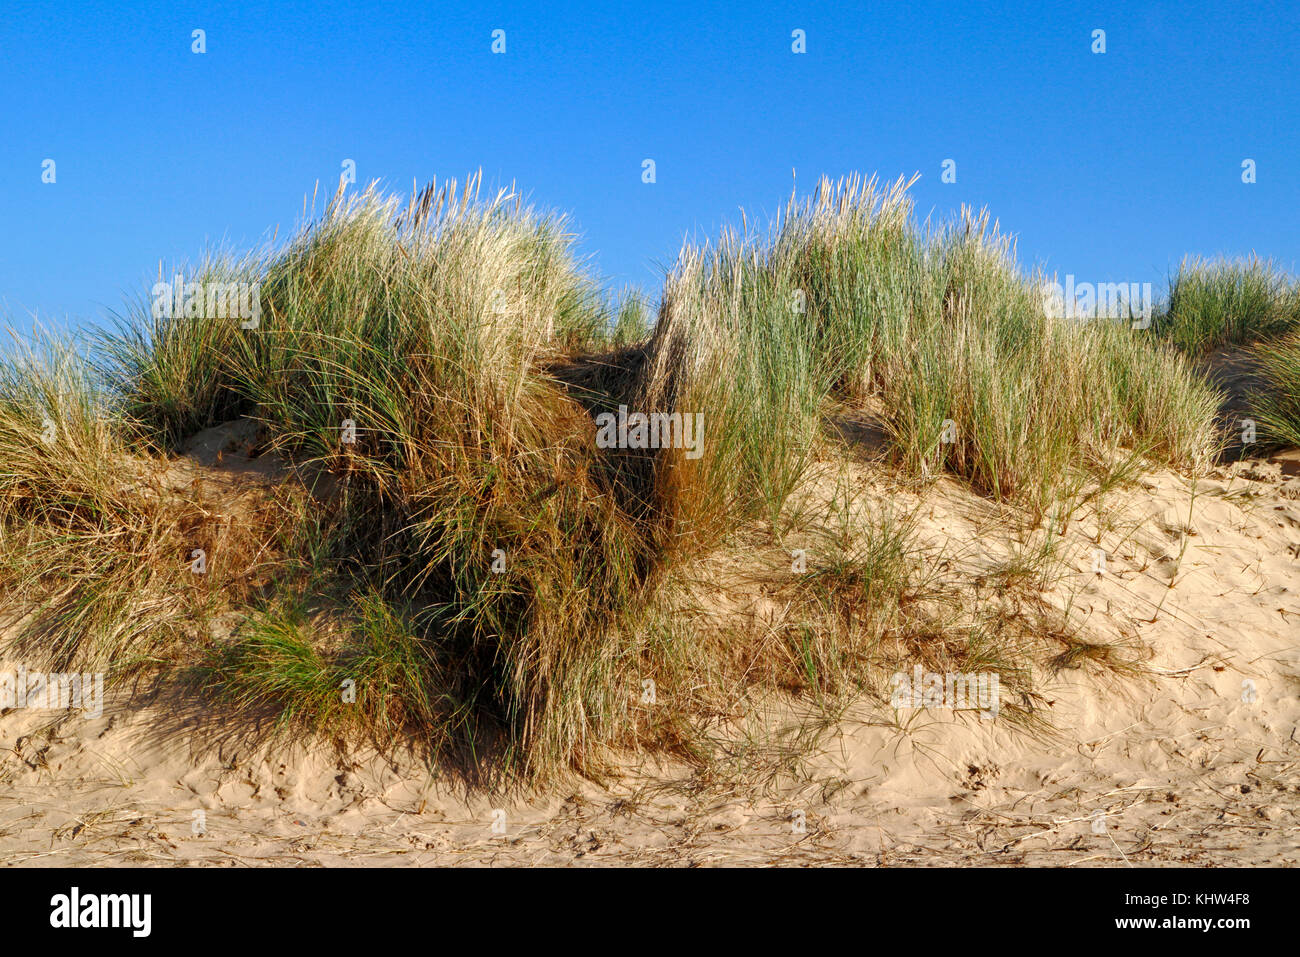 A view of marram grass, Ammophilia arenaria, on sand dunes on the North Norfolk coast at Holkham, Norfolk, England, - Stock Image